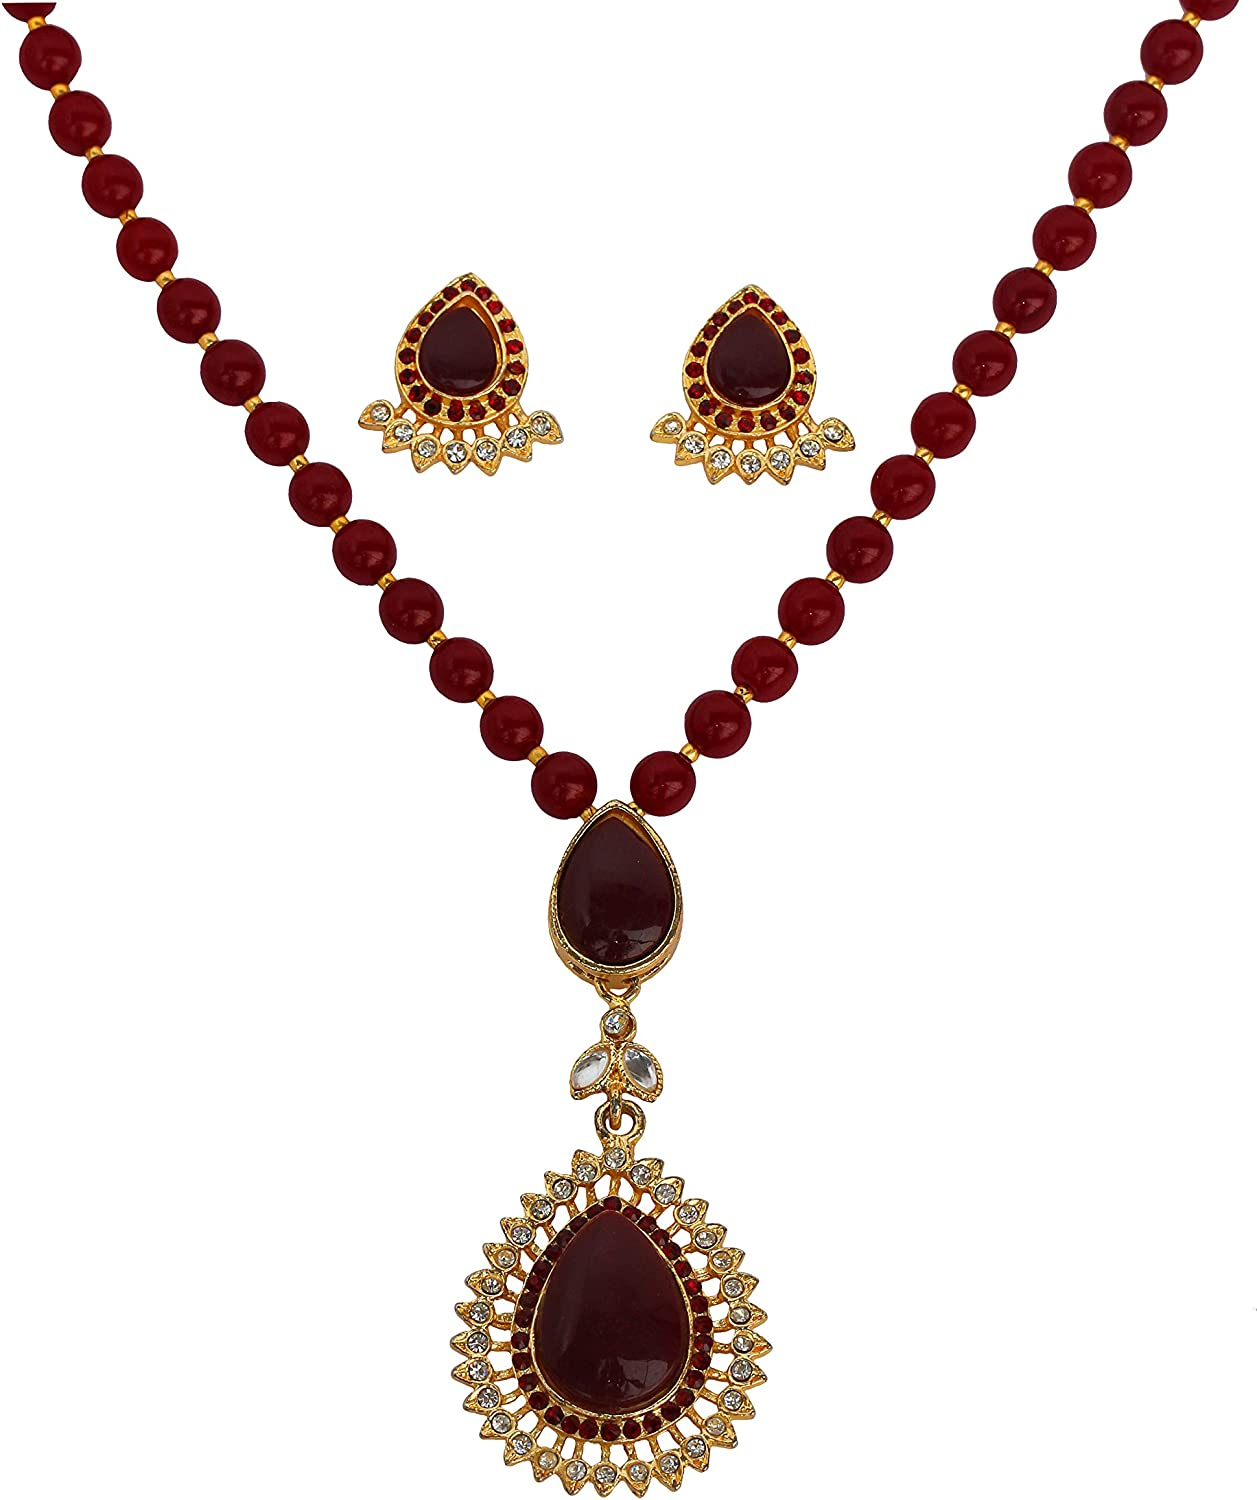 Touchstone Gold Tone Indian Hollywood Kundan Touch Faux Ruby Rhinestones red Beads Jewelry Pendant Set